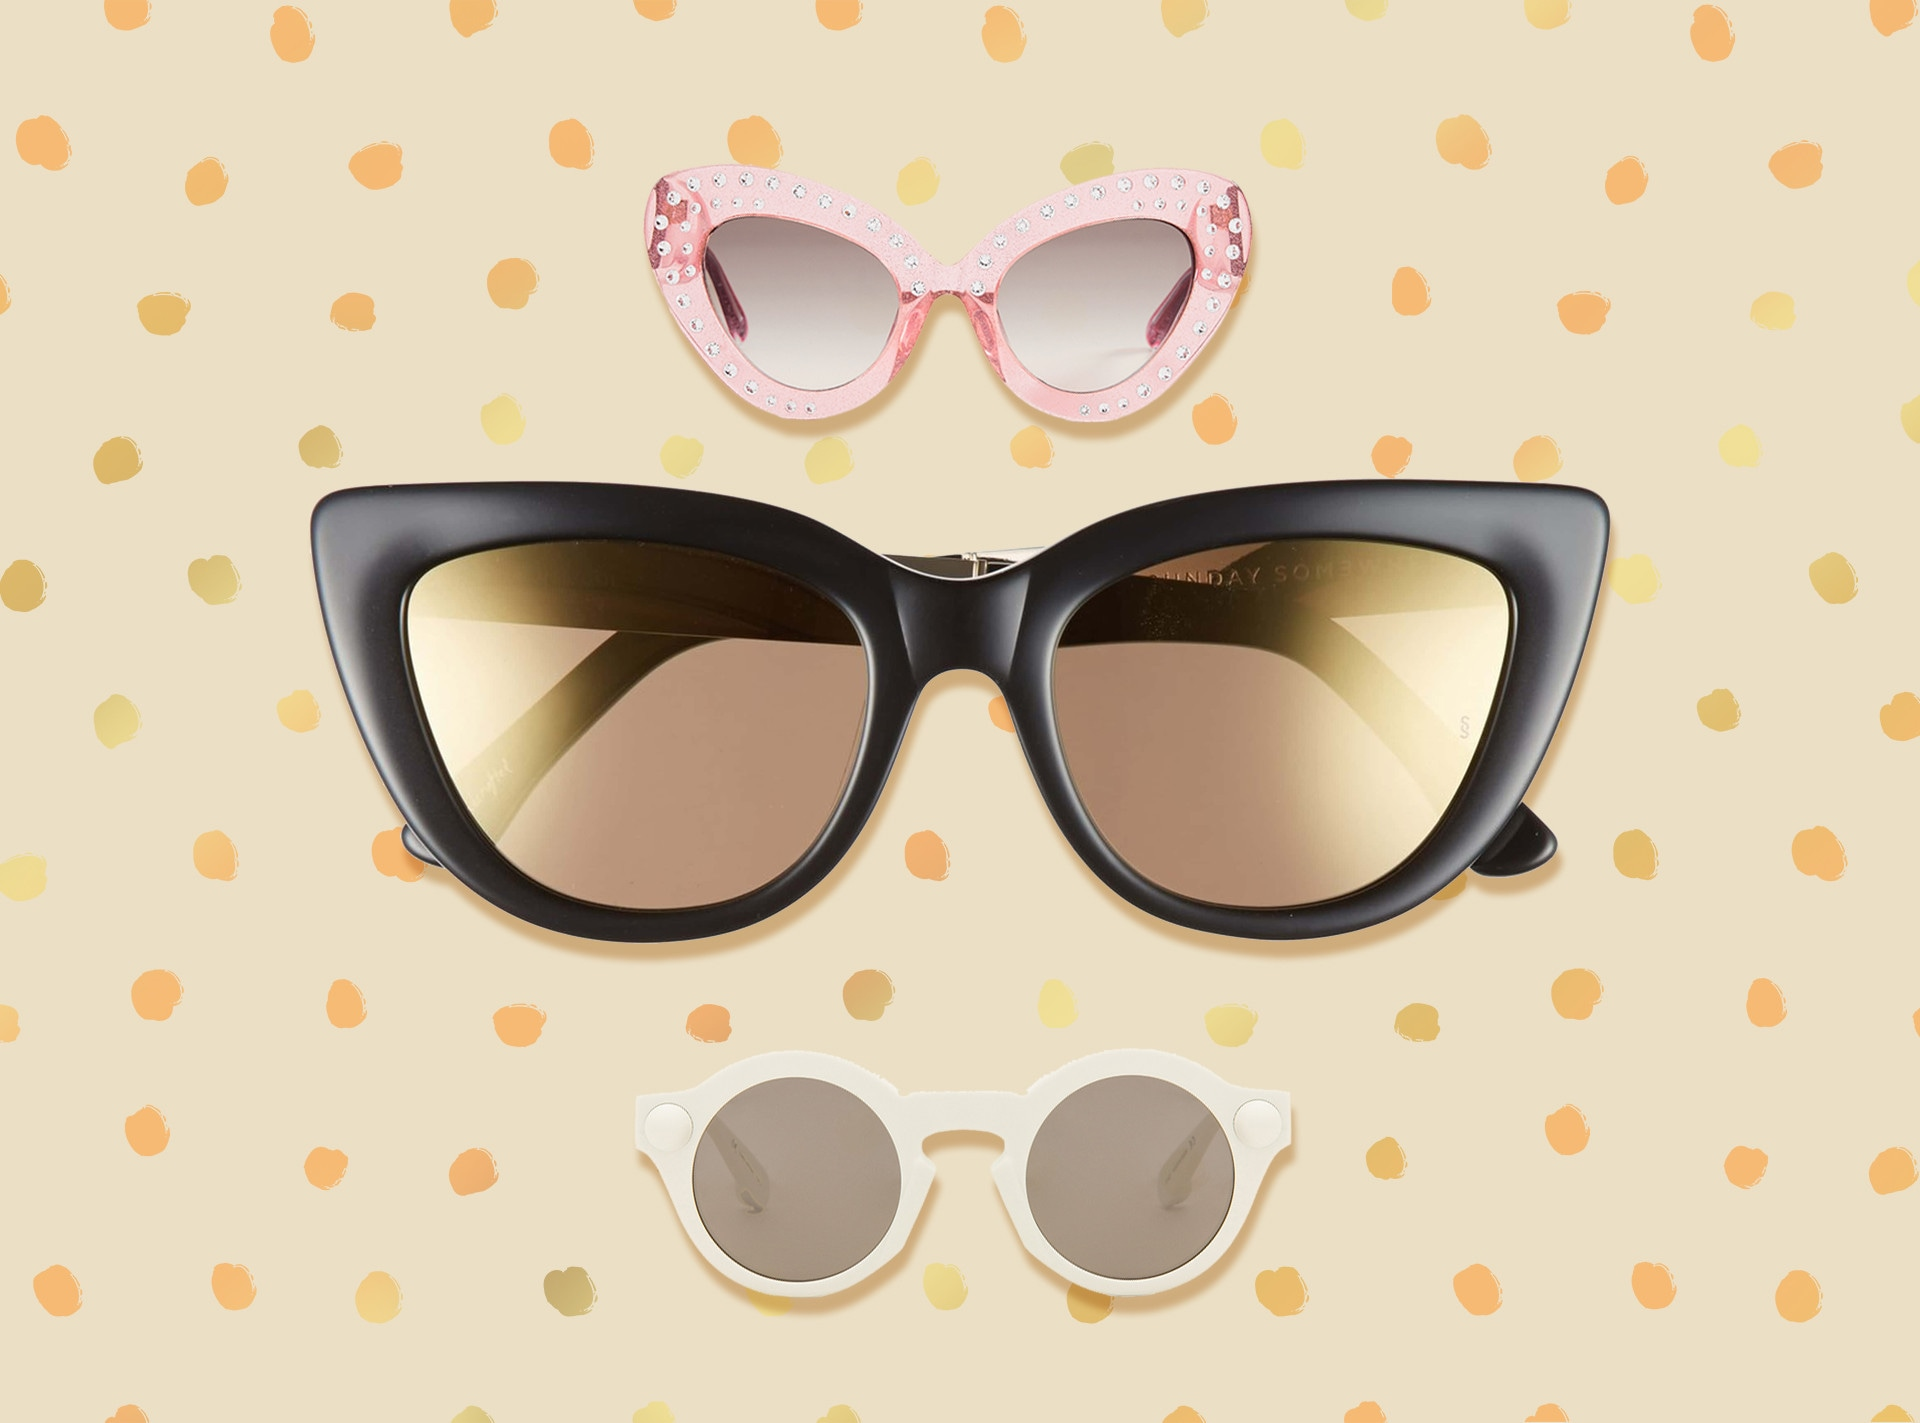 E-Comm: Top 10 Sunglasses on Major Sale Right Now